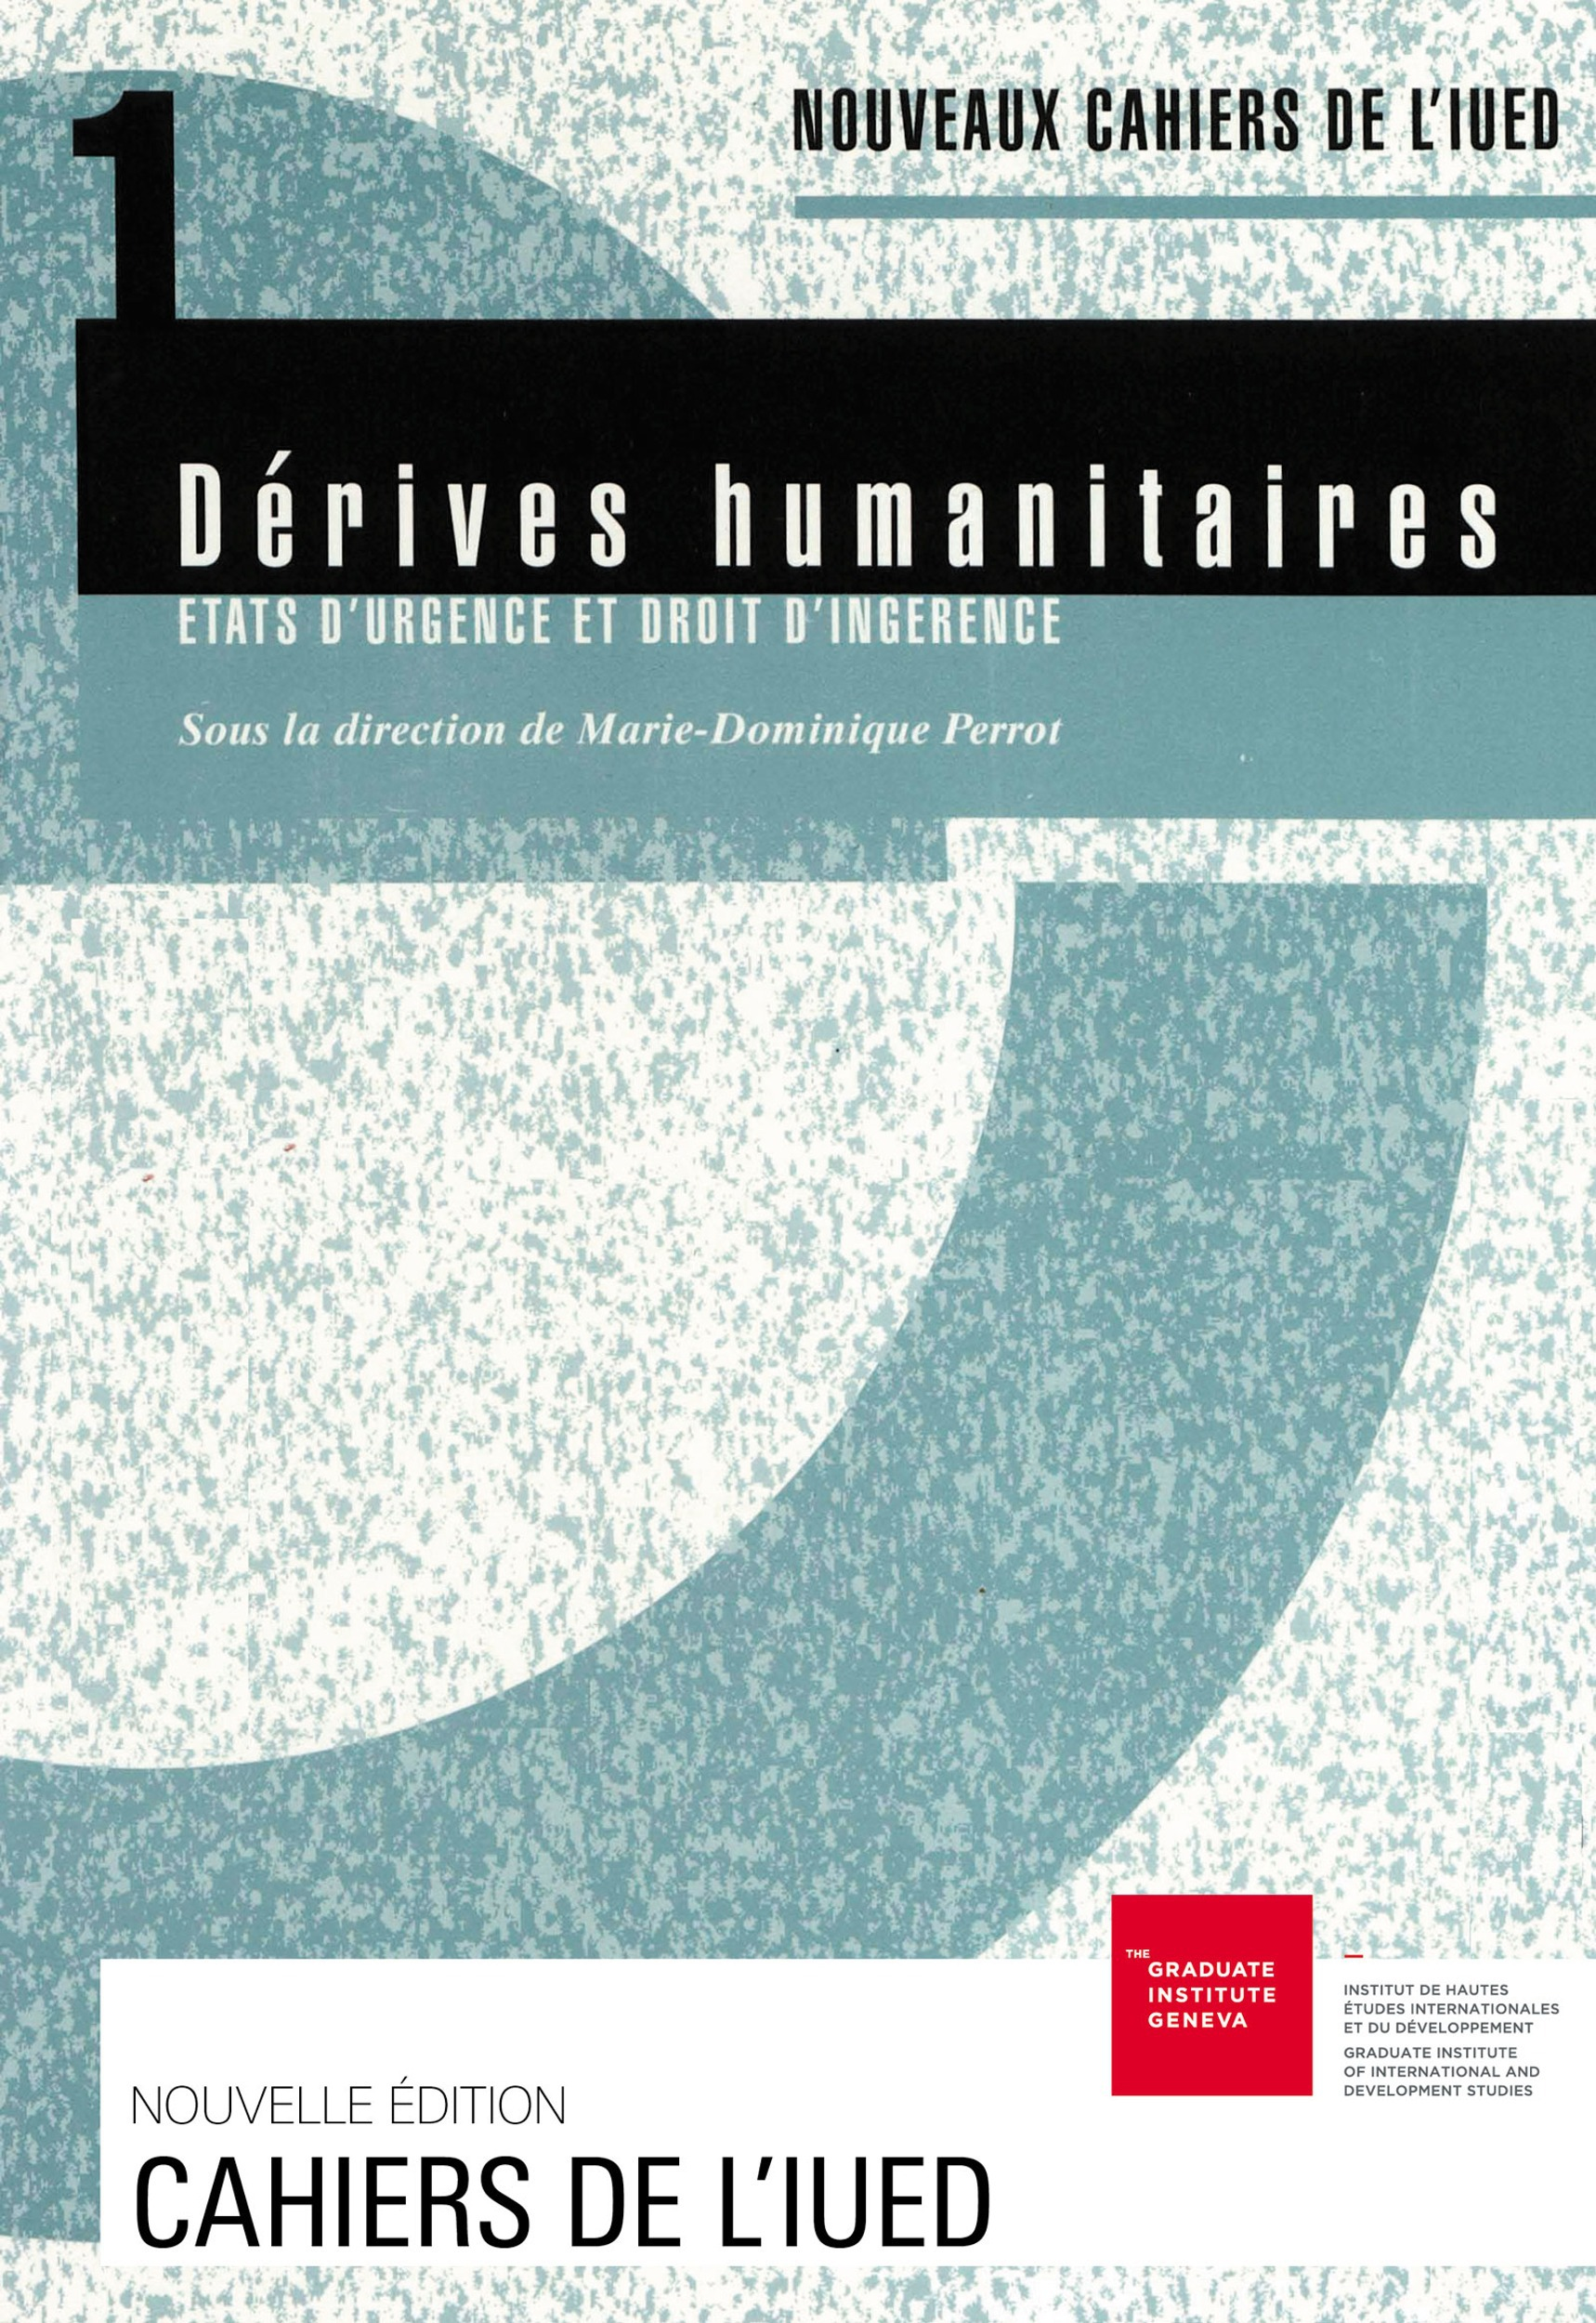 Marie-Dominique Perrot Dérives humanitaires